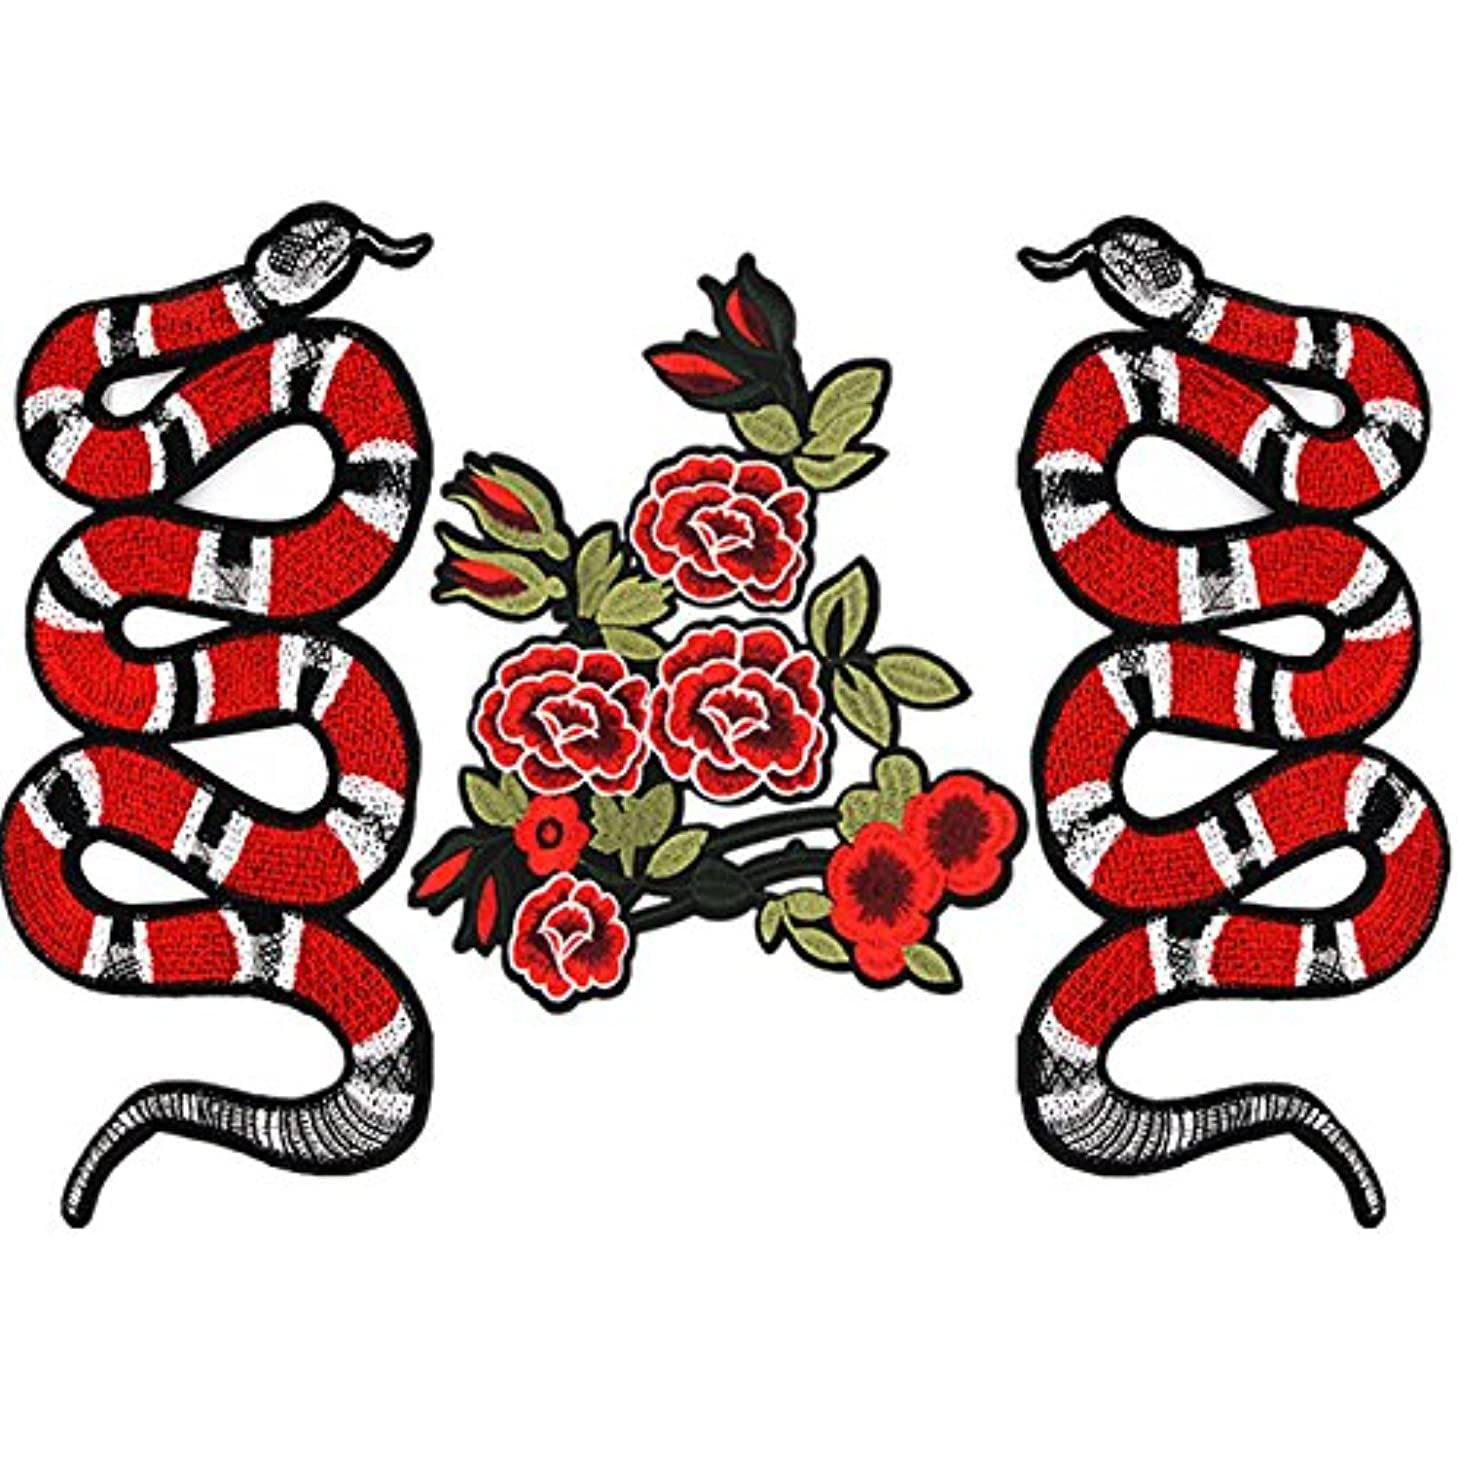 Toonol 3PCs Iron On Patches For Clothing Snake Flower Embroidery Patch Appliques Badge Stickers For Clothes Jeans Jacket Delicate